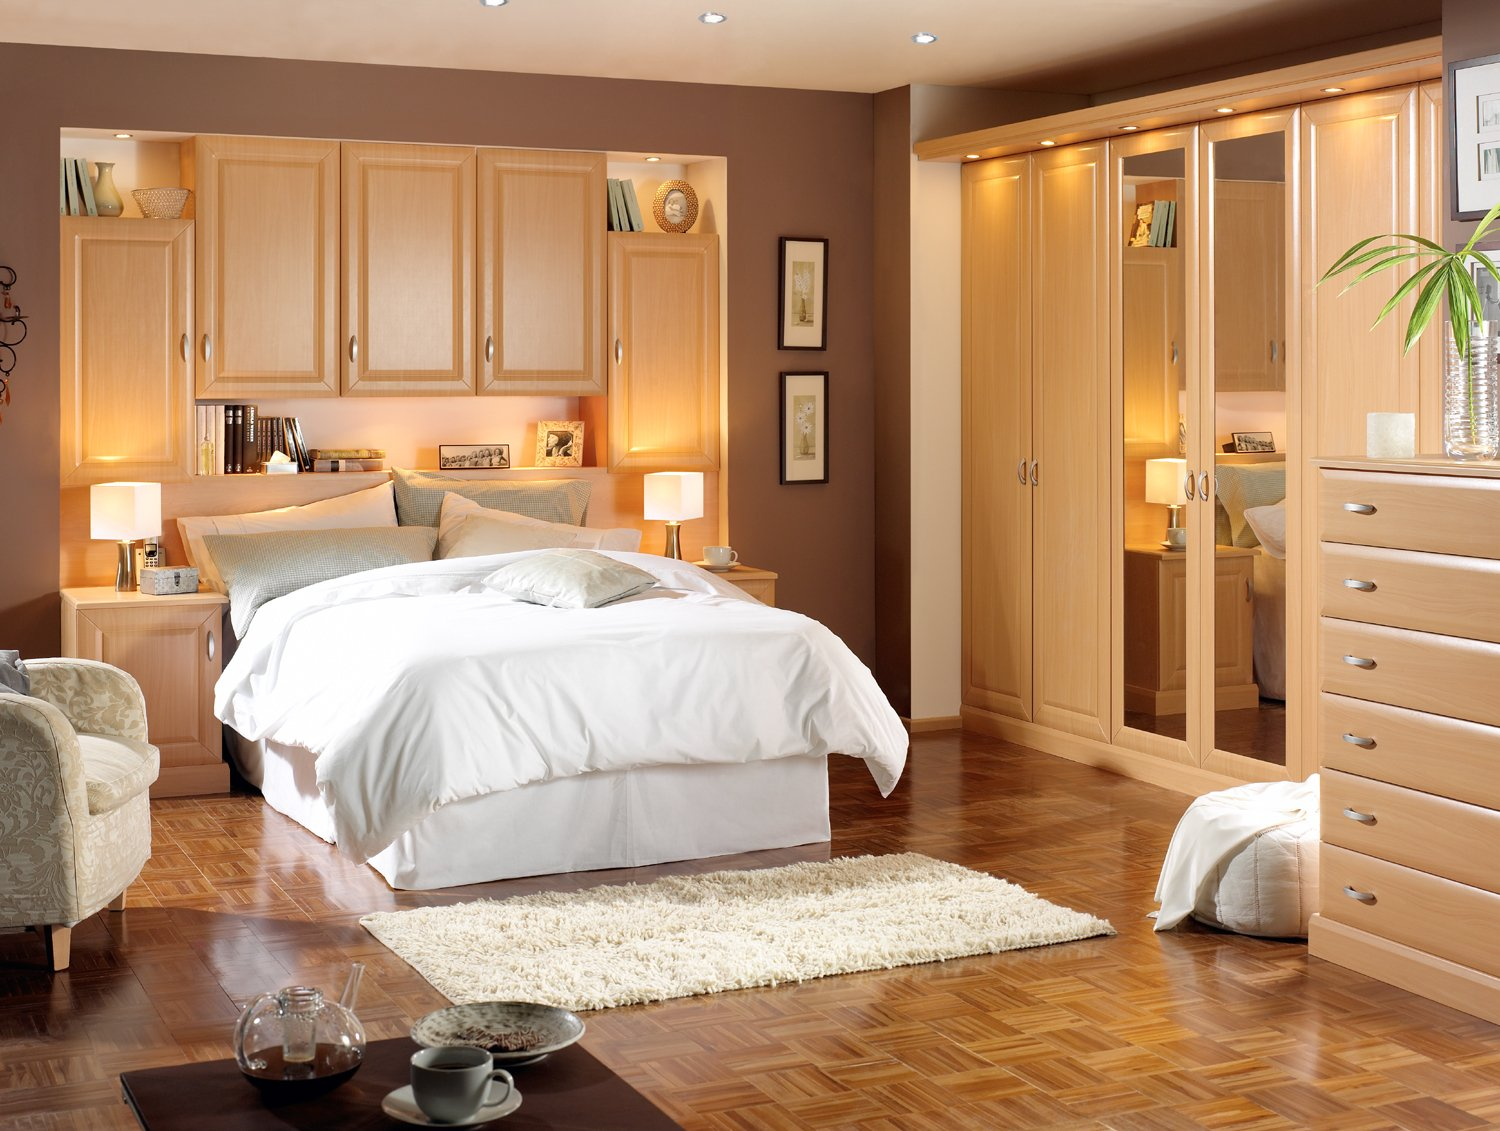 Bedrooms cupboard designs pictures an interior design for Bedroom interior images